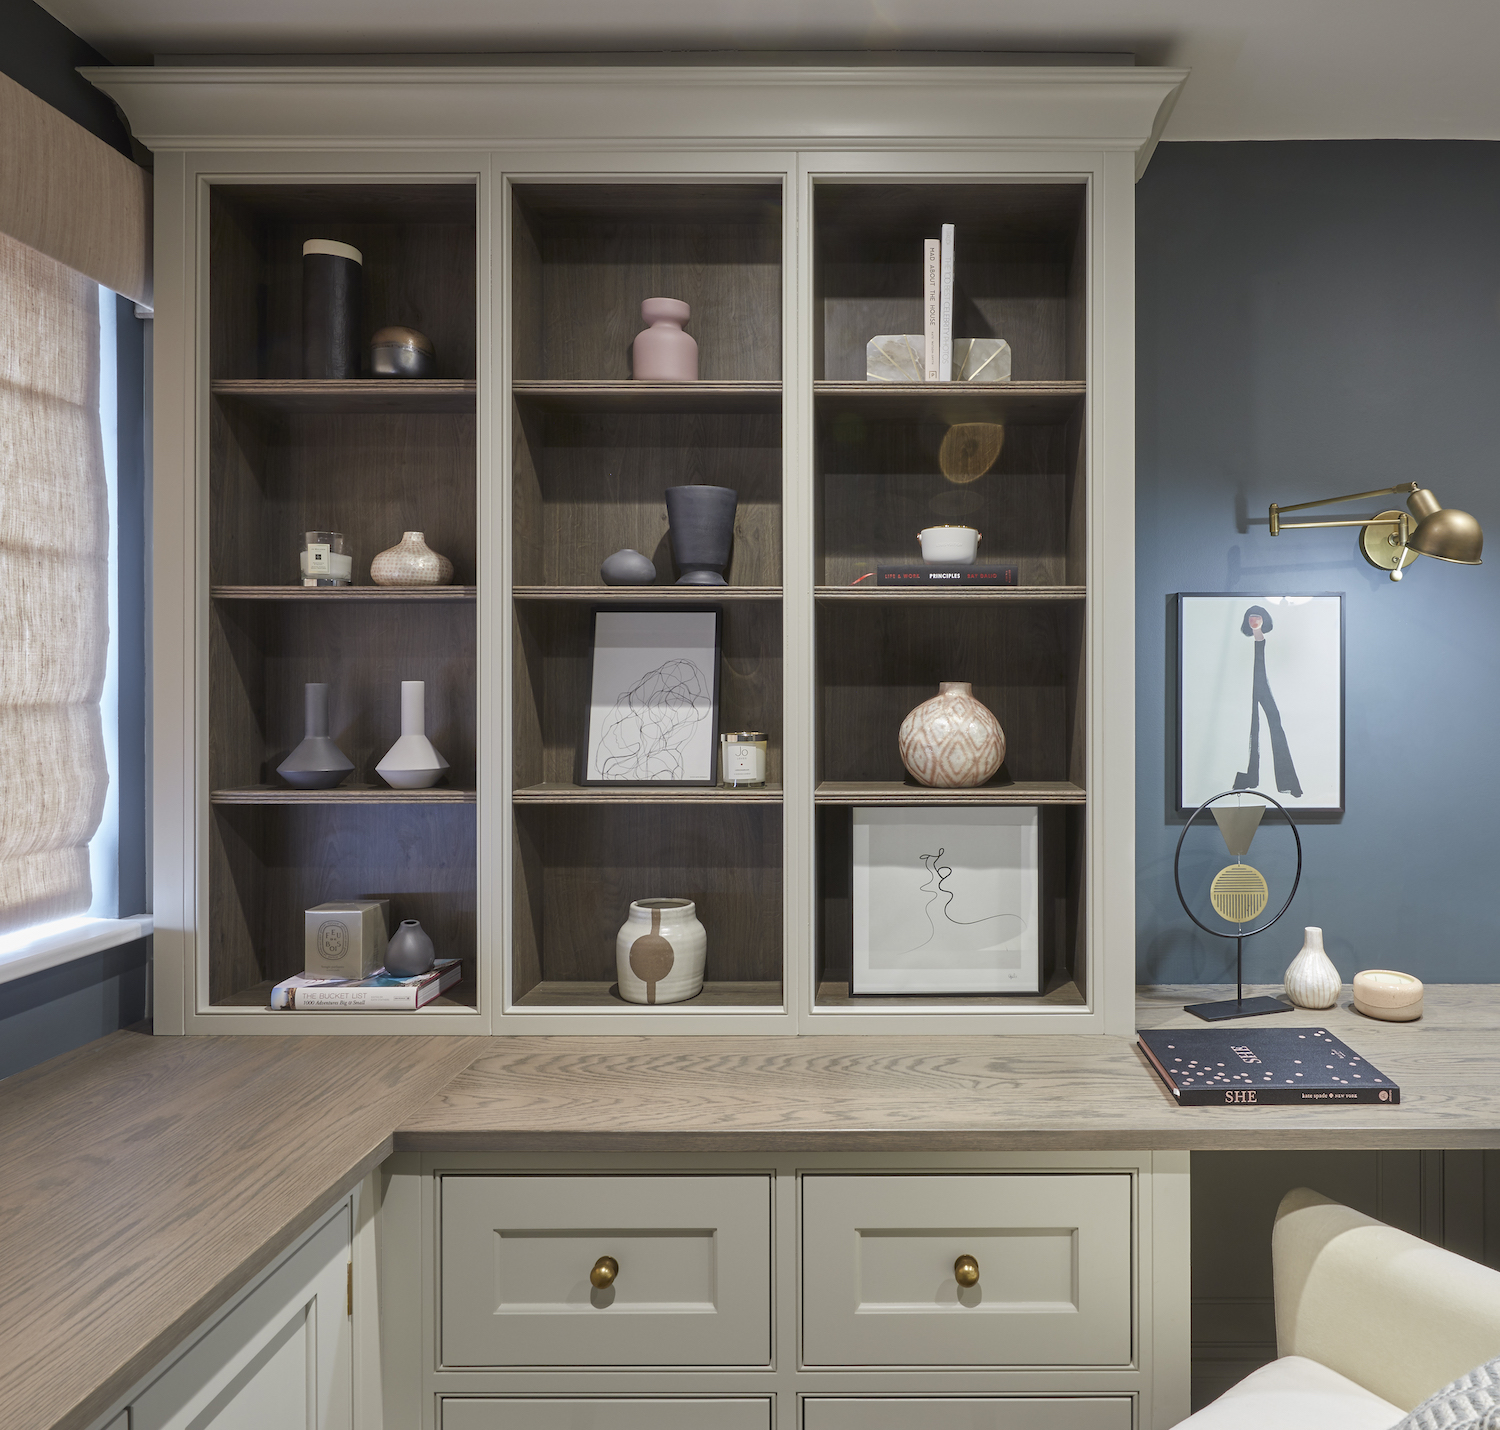 Cherie Lee Interiors | West London Project | Humphrey Munson Blog